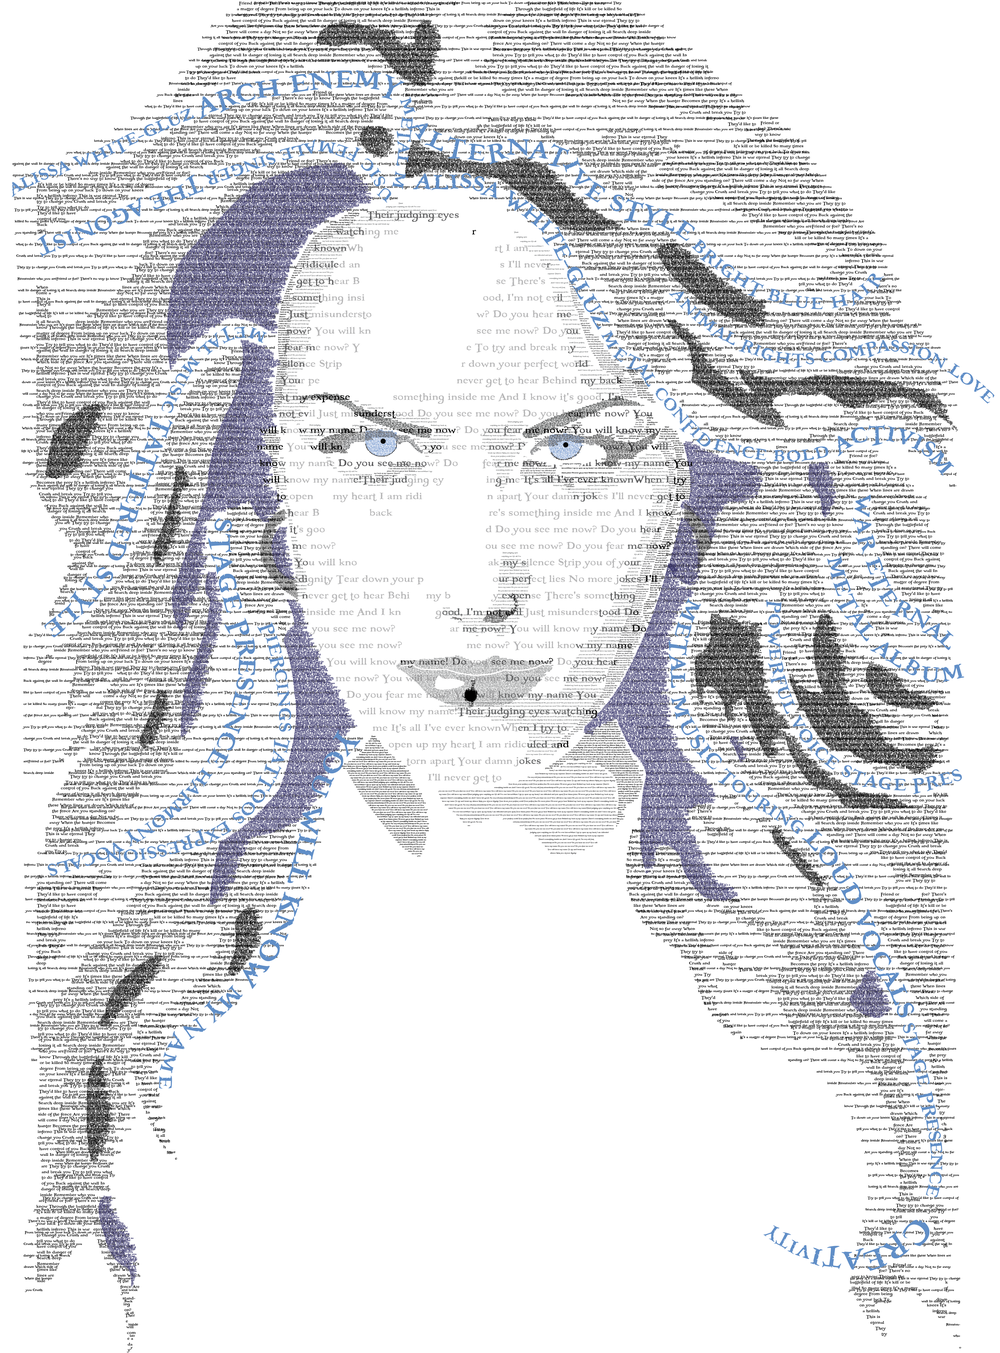 Typographical portrait of Alissa White-Gluz